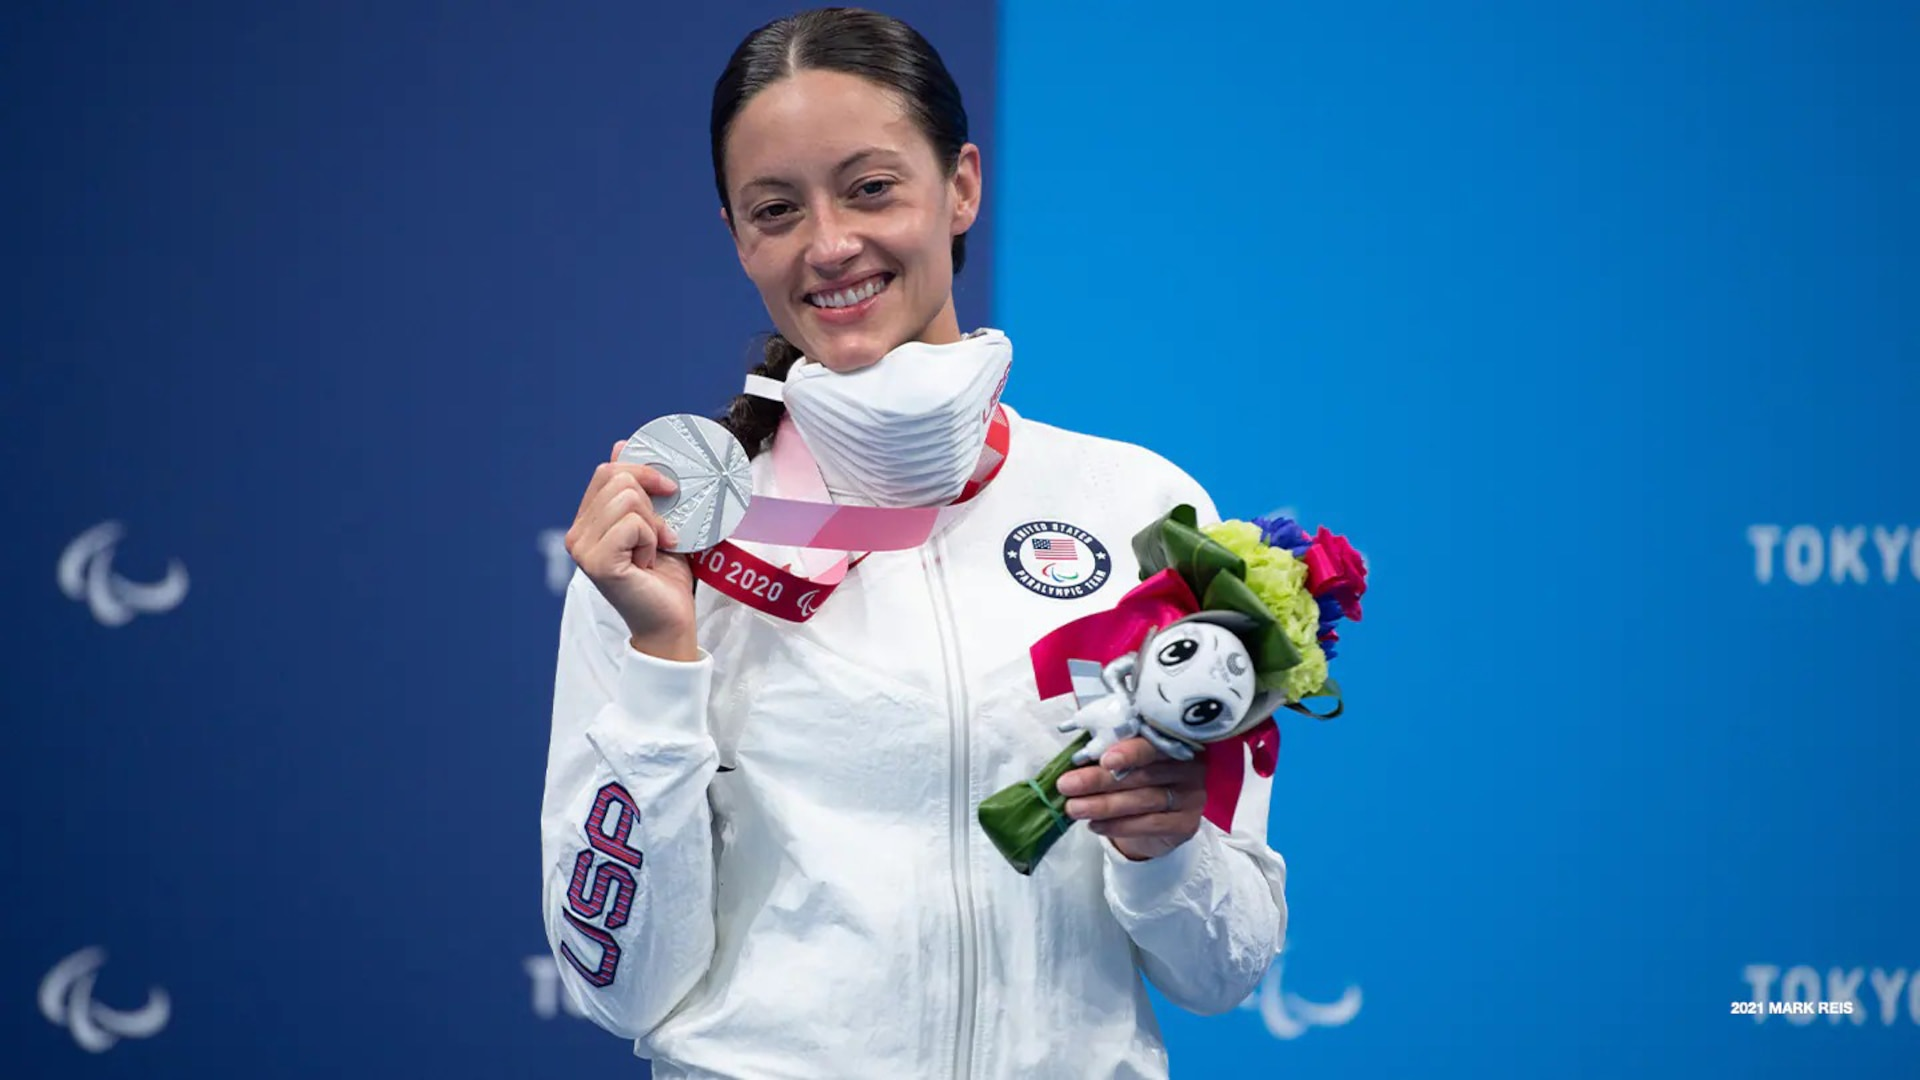 Elizabeth Marks poses with her silver medal at the Paralympic Games Tokyo 2020 on Aug. 25, 2021 in Tokyo.